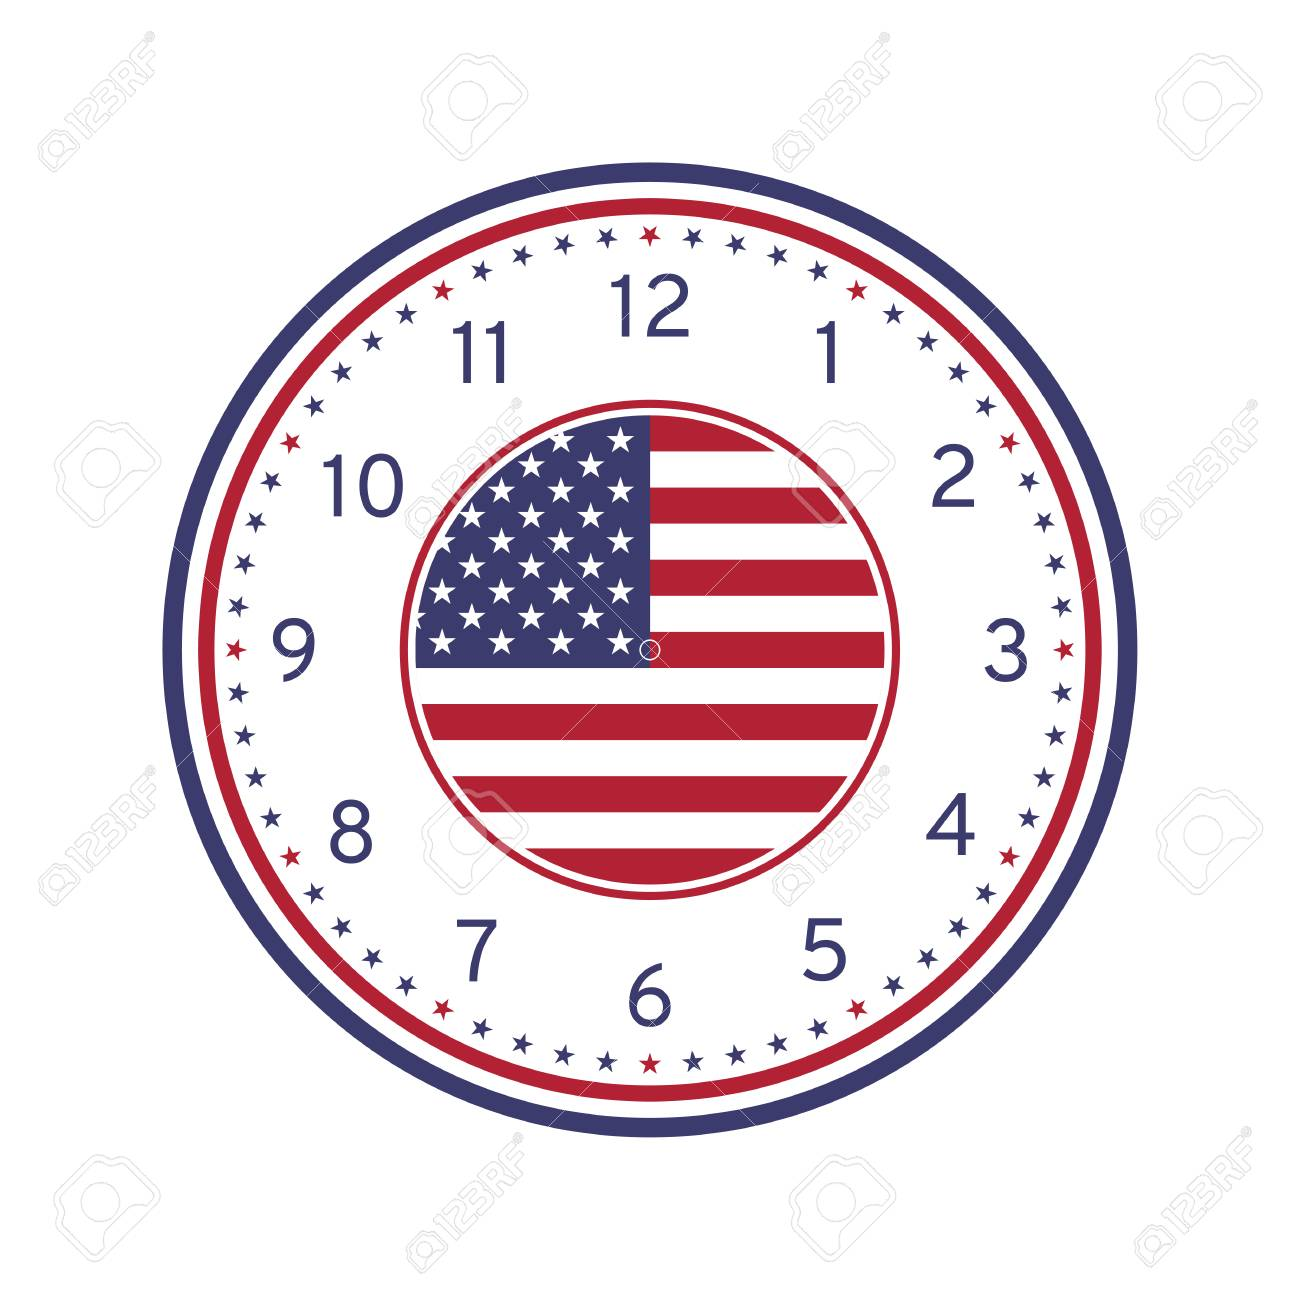 graphic about Printable Clock Face Template referred to as United states Flag Printable Clock Experience Template Isolated upon White History